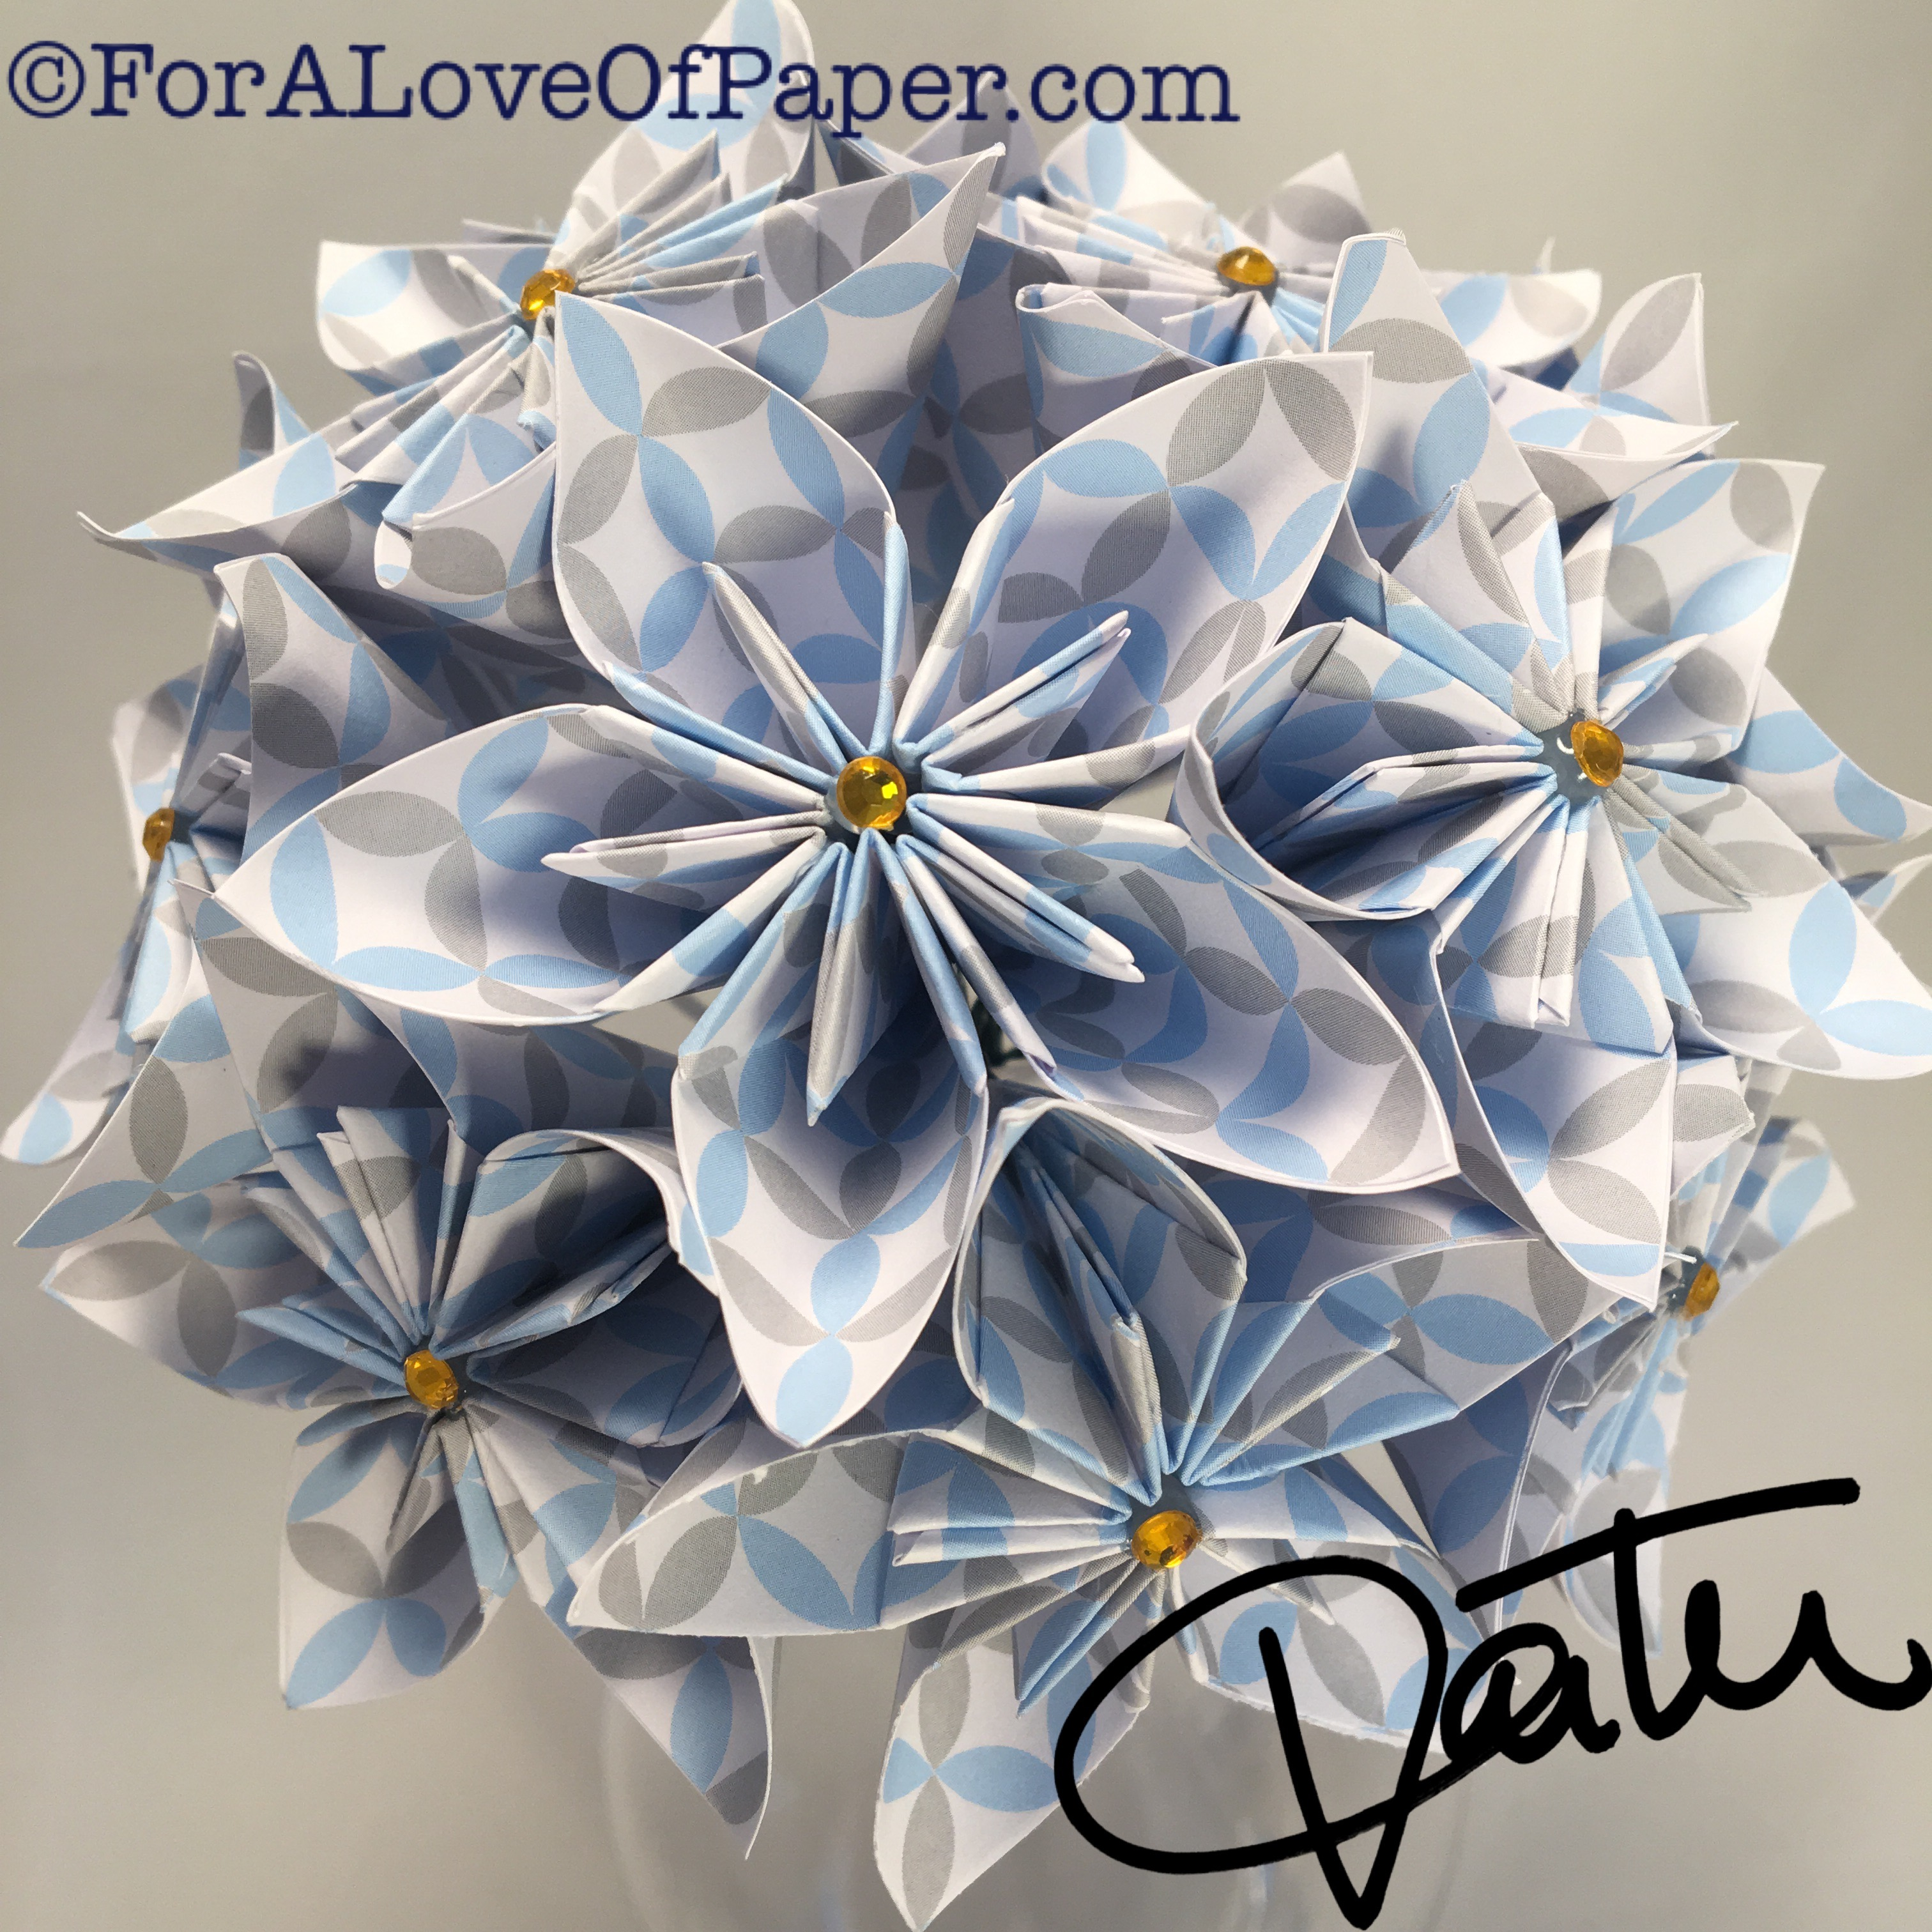 White paper flowers with blue and grey pattern